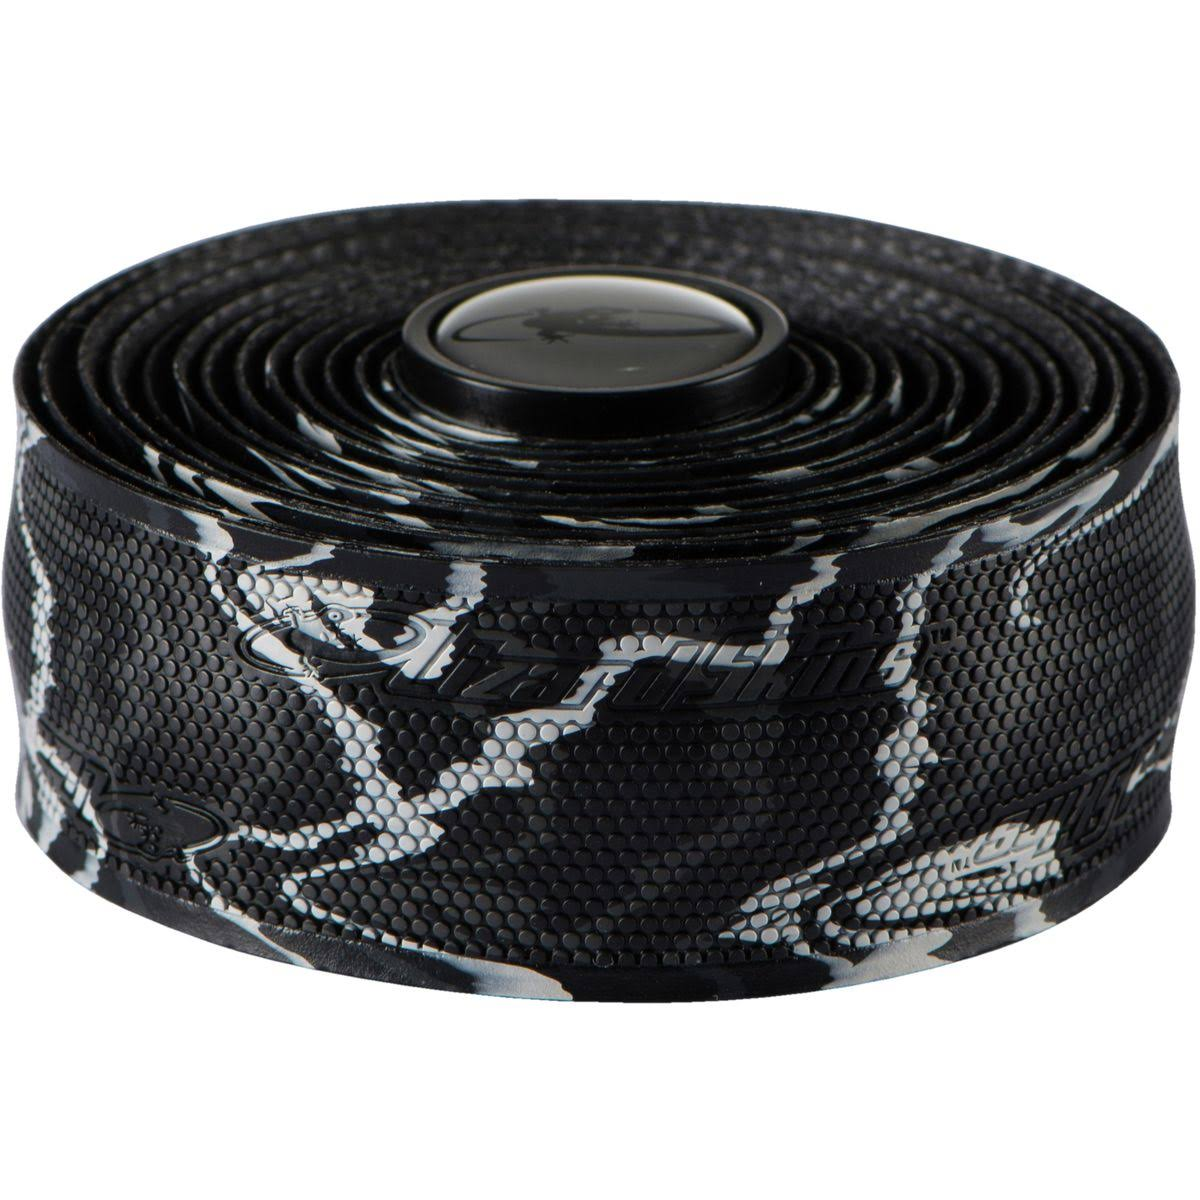 Lizard Skins DSP 1.8mm Bar Tape - Black Camo